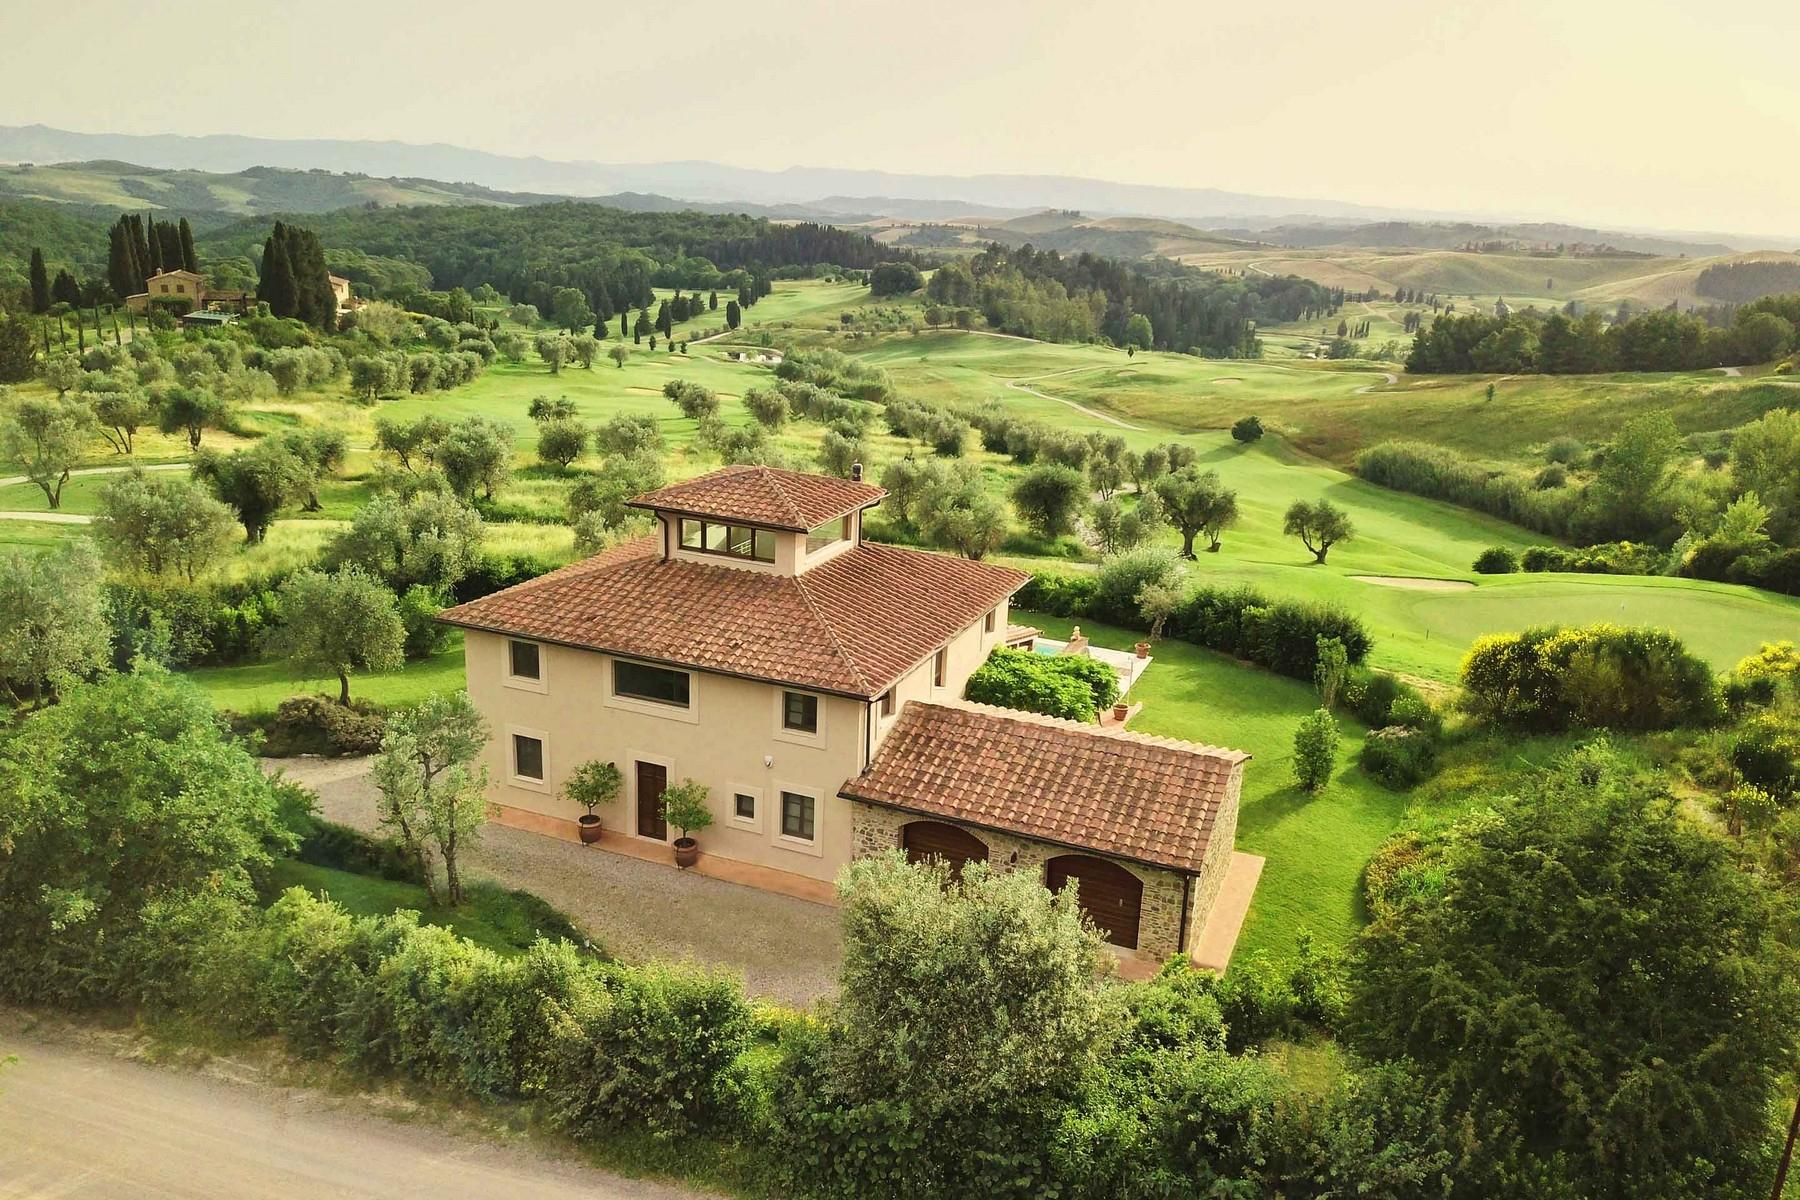 Marvellous new build villas in the Tuscan countryside - 14